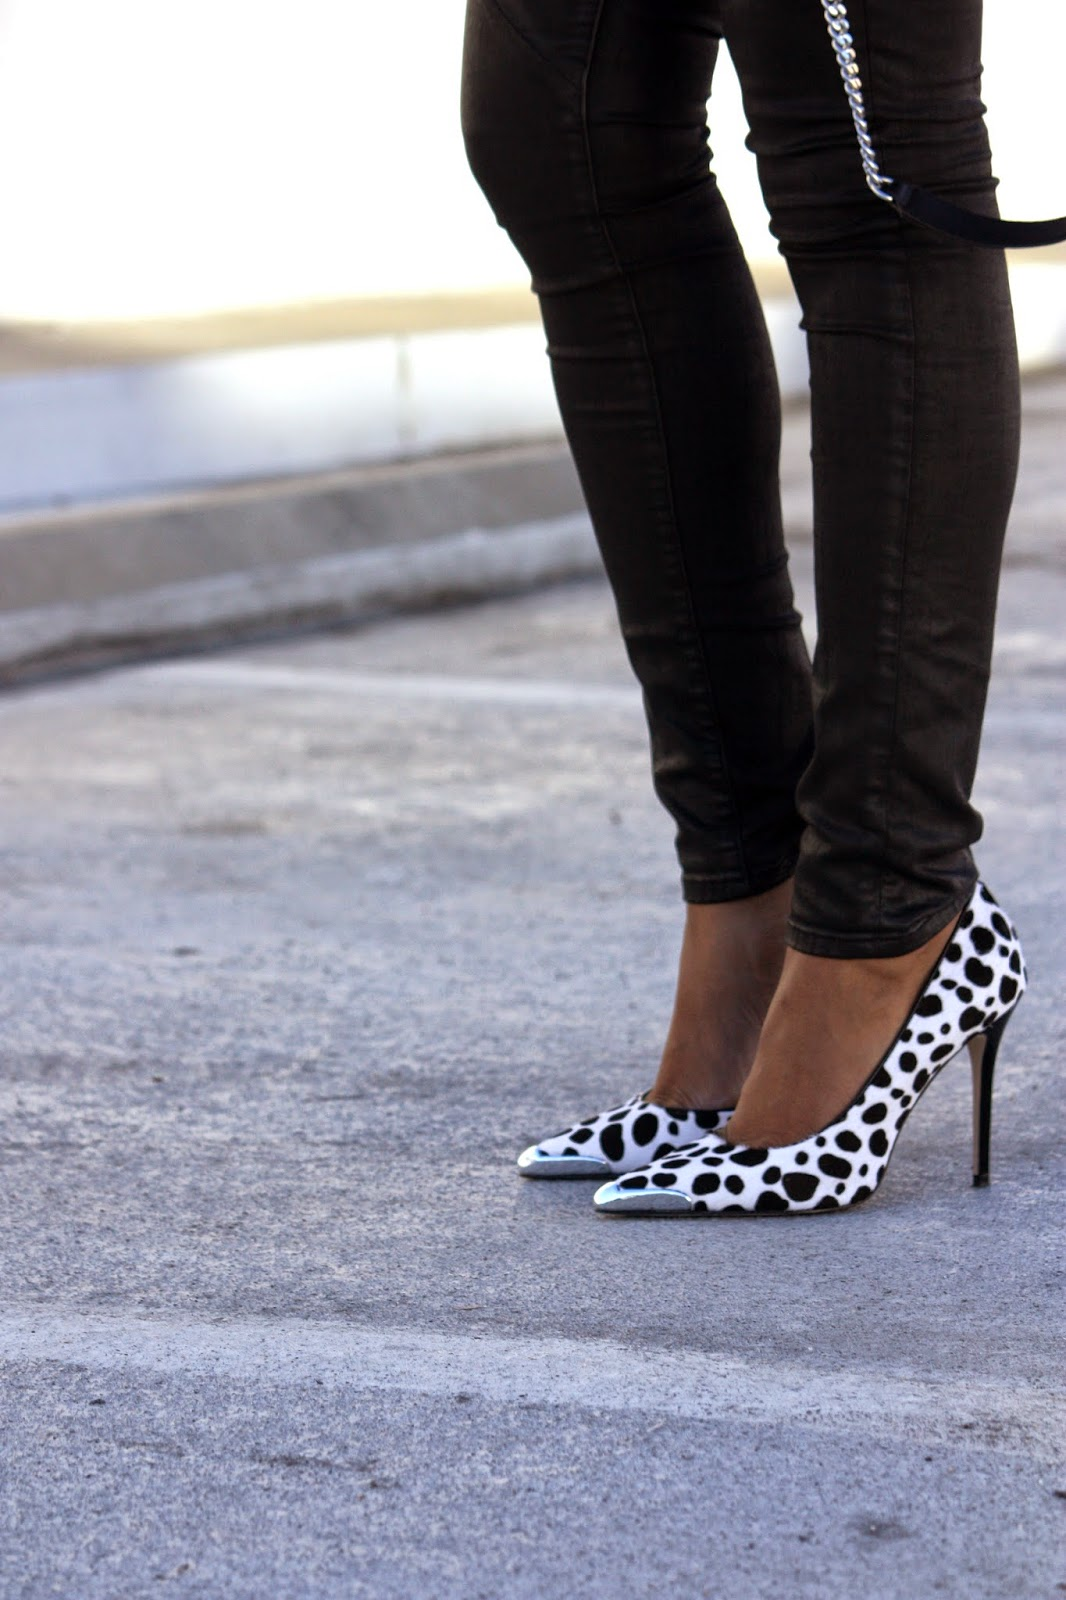 Wearing Guess pointed-toe Beilany pumps